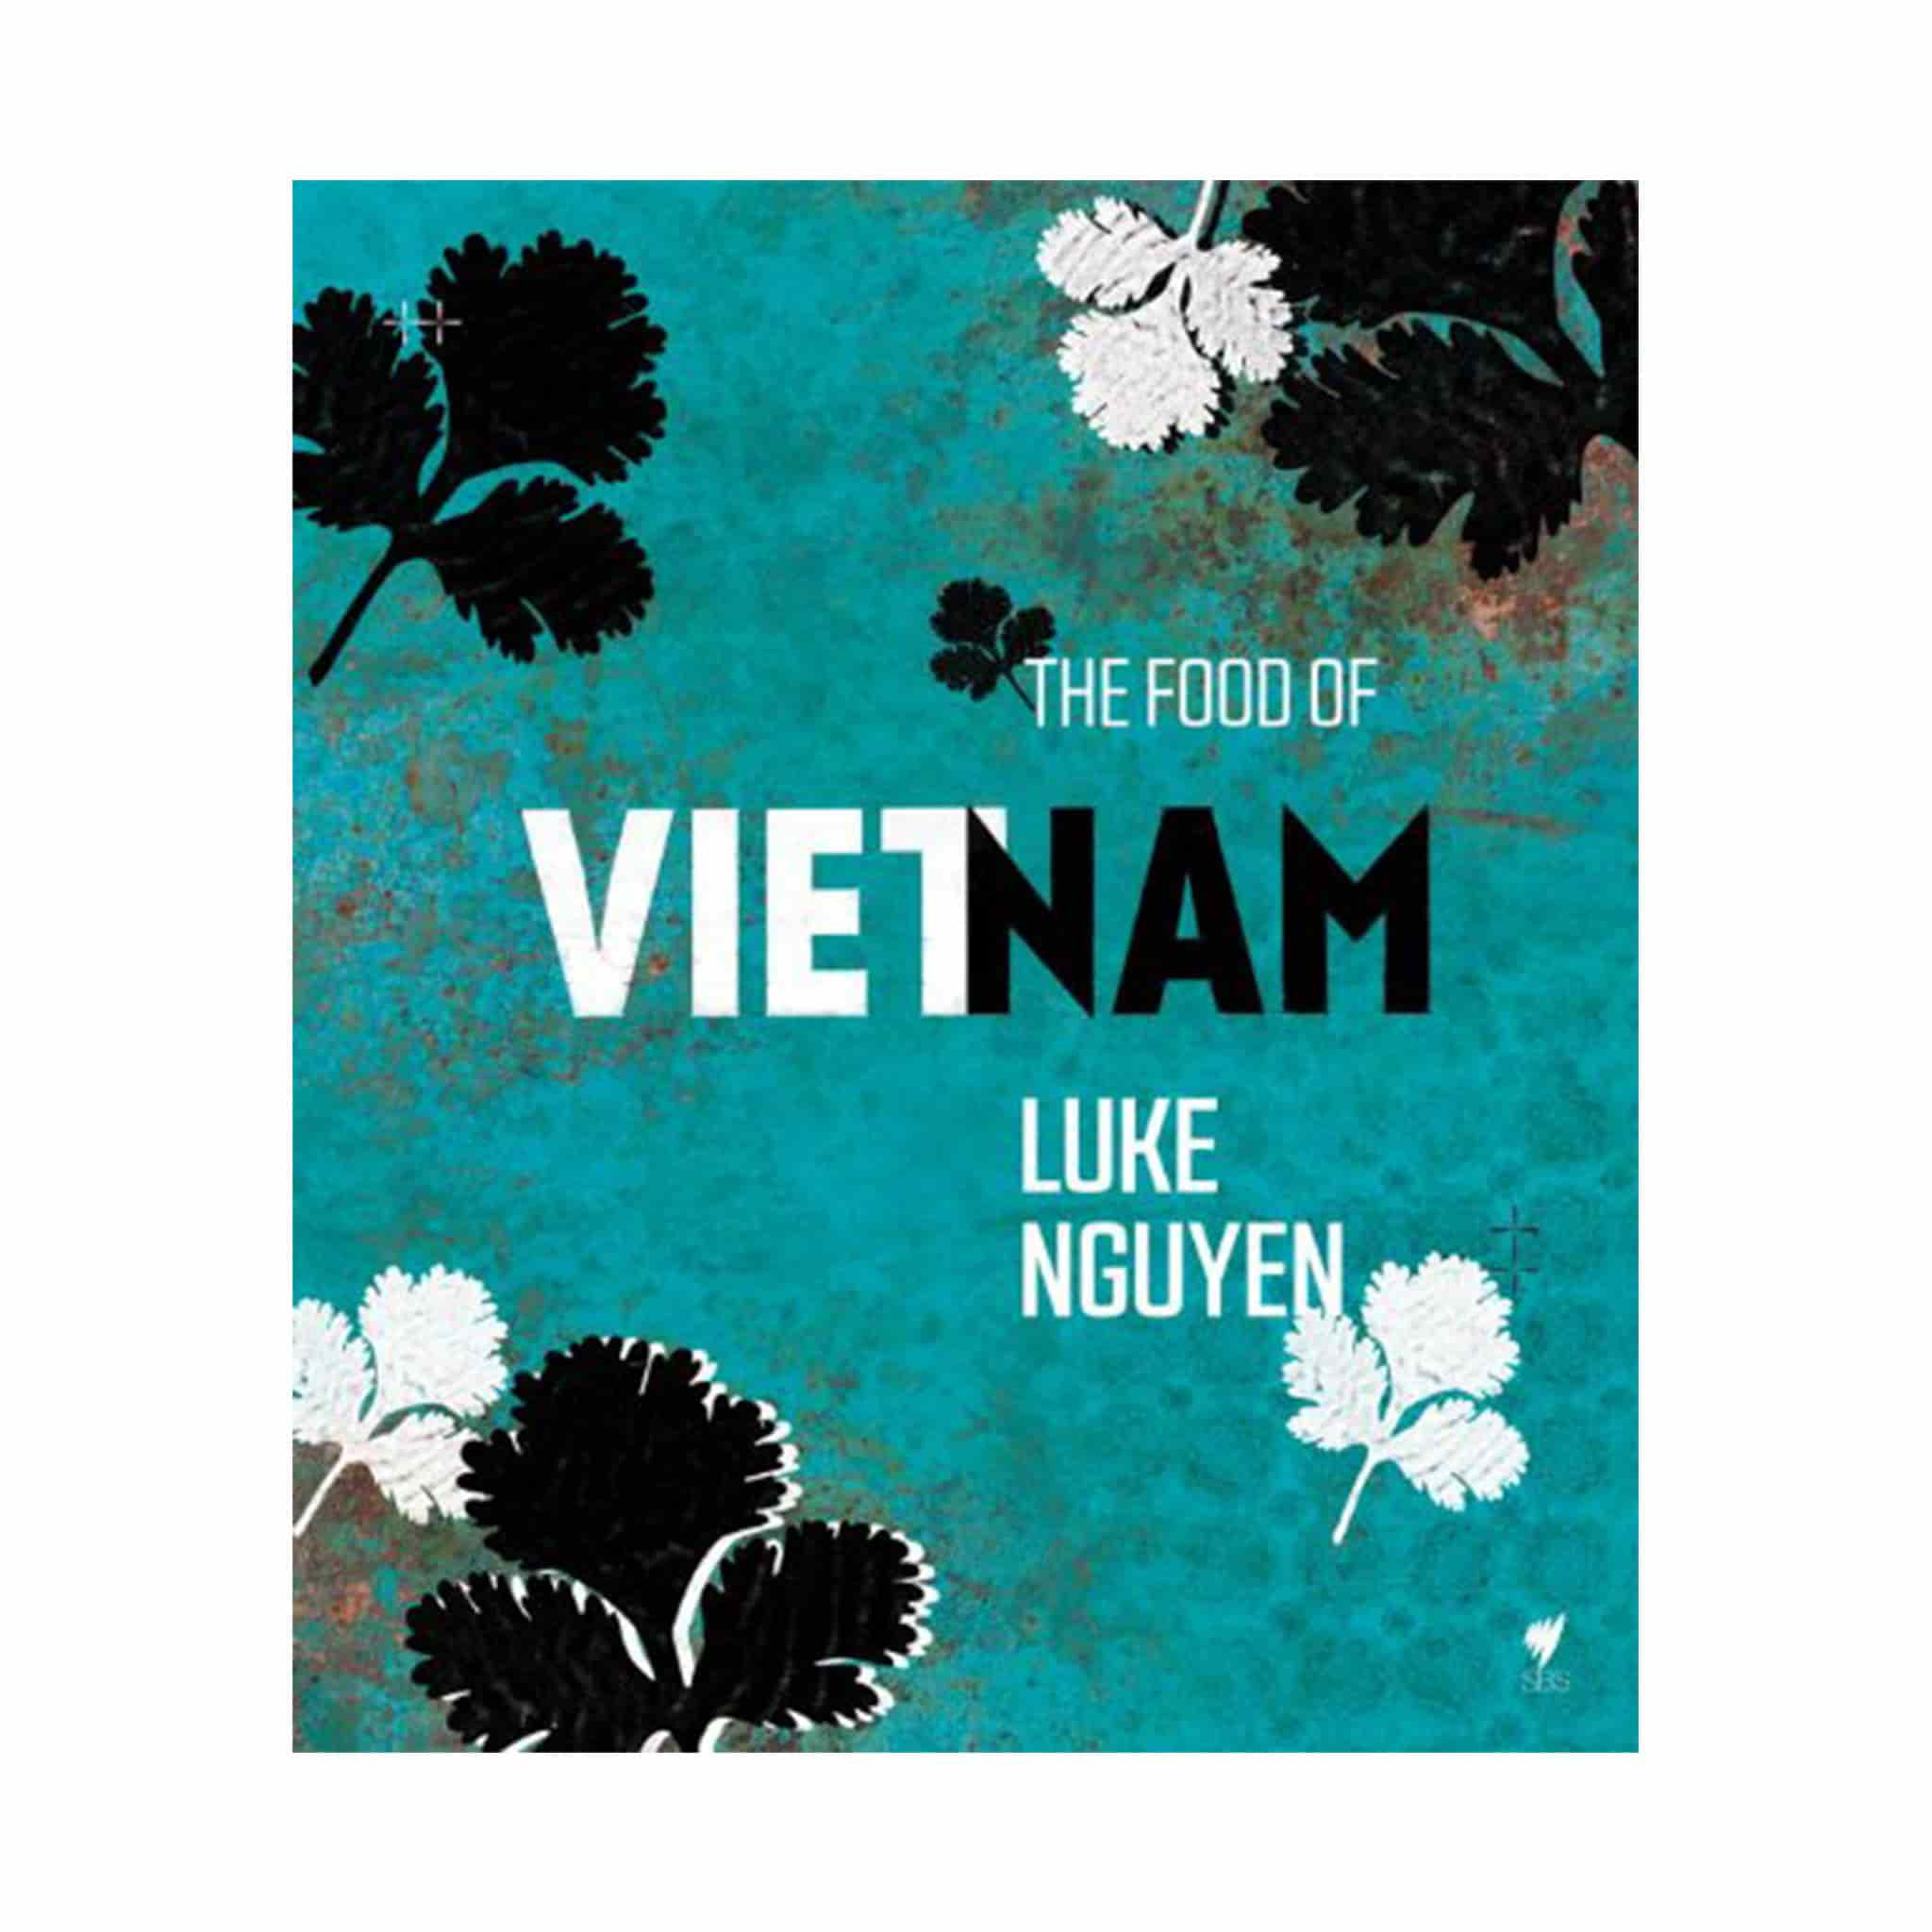 The Food Of Vietnam by Luke Nguyen